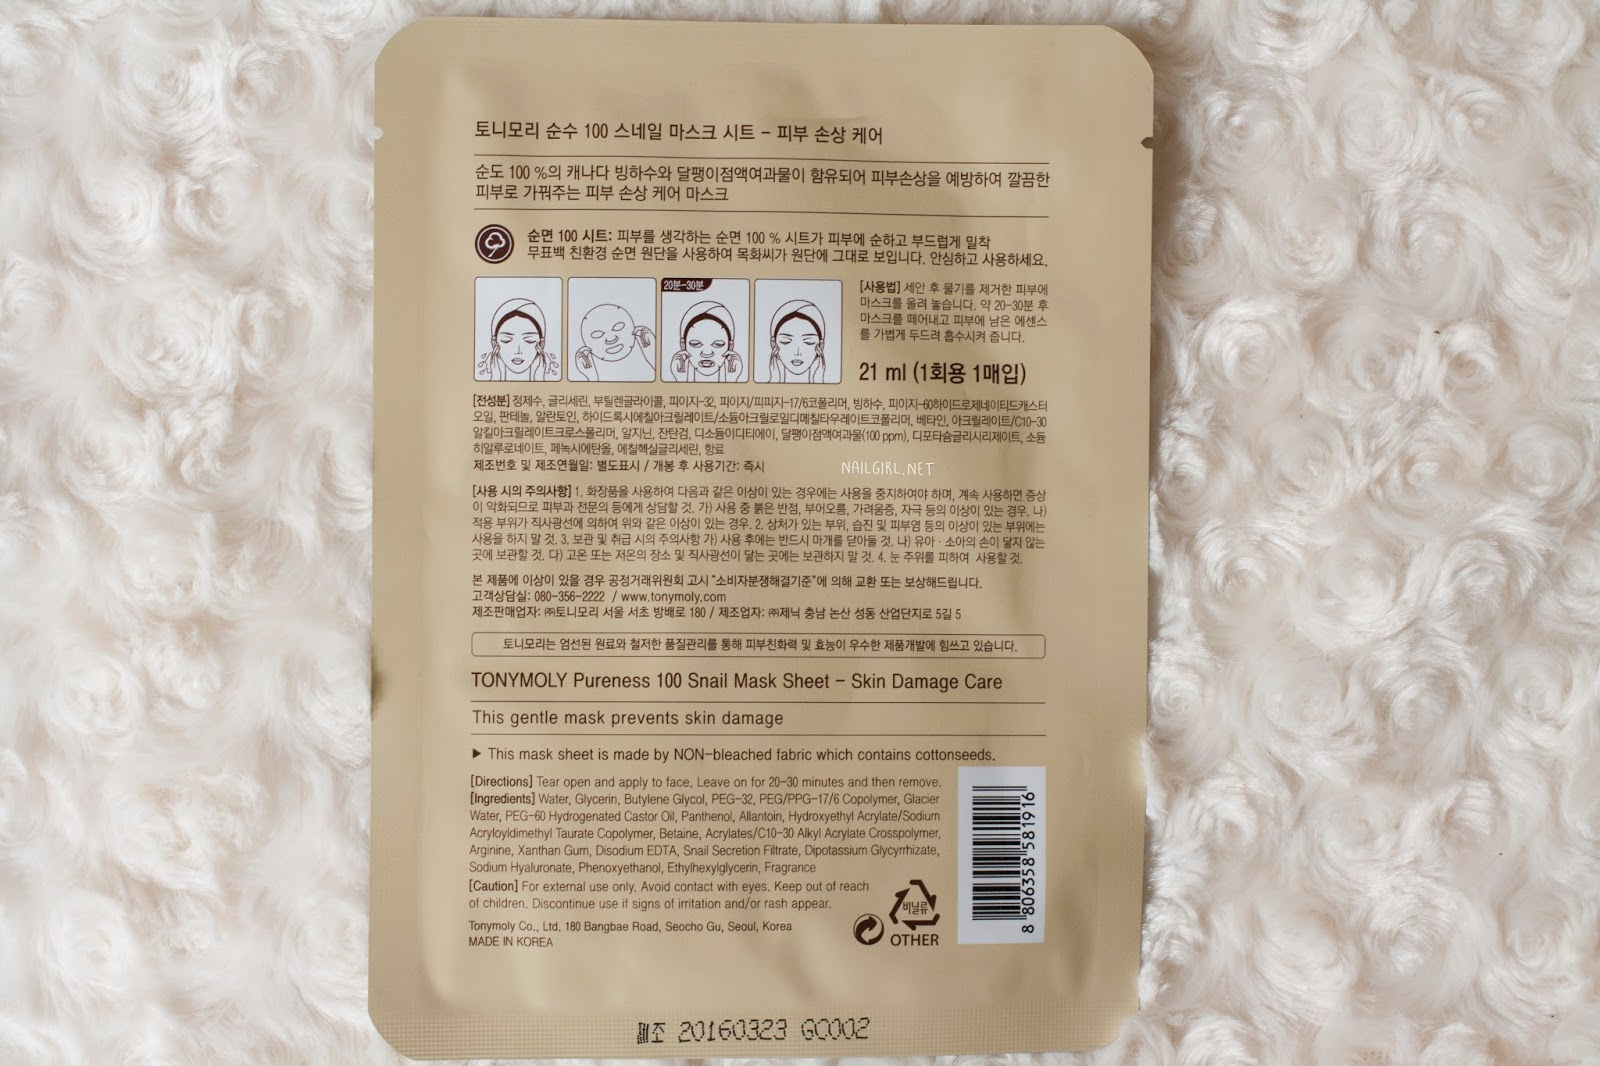 tonymoly pureness 100 snail mask review ingredients